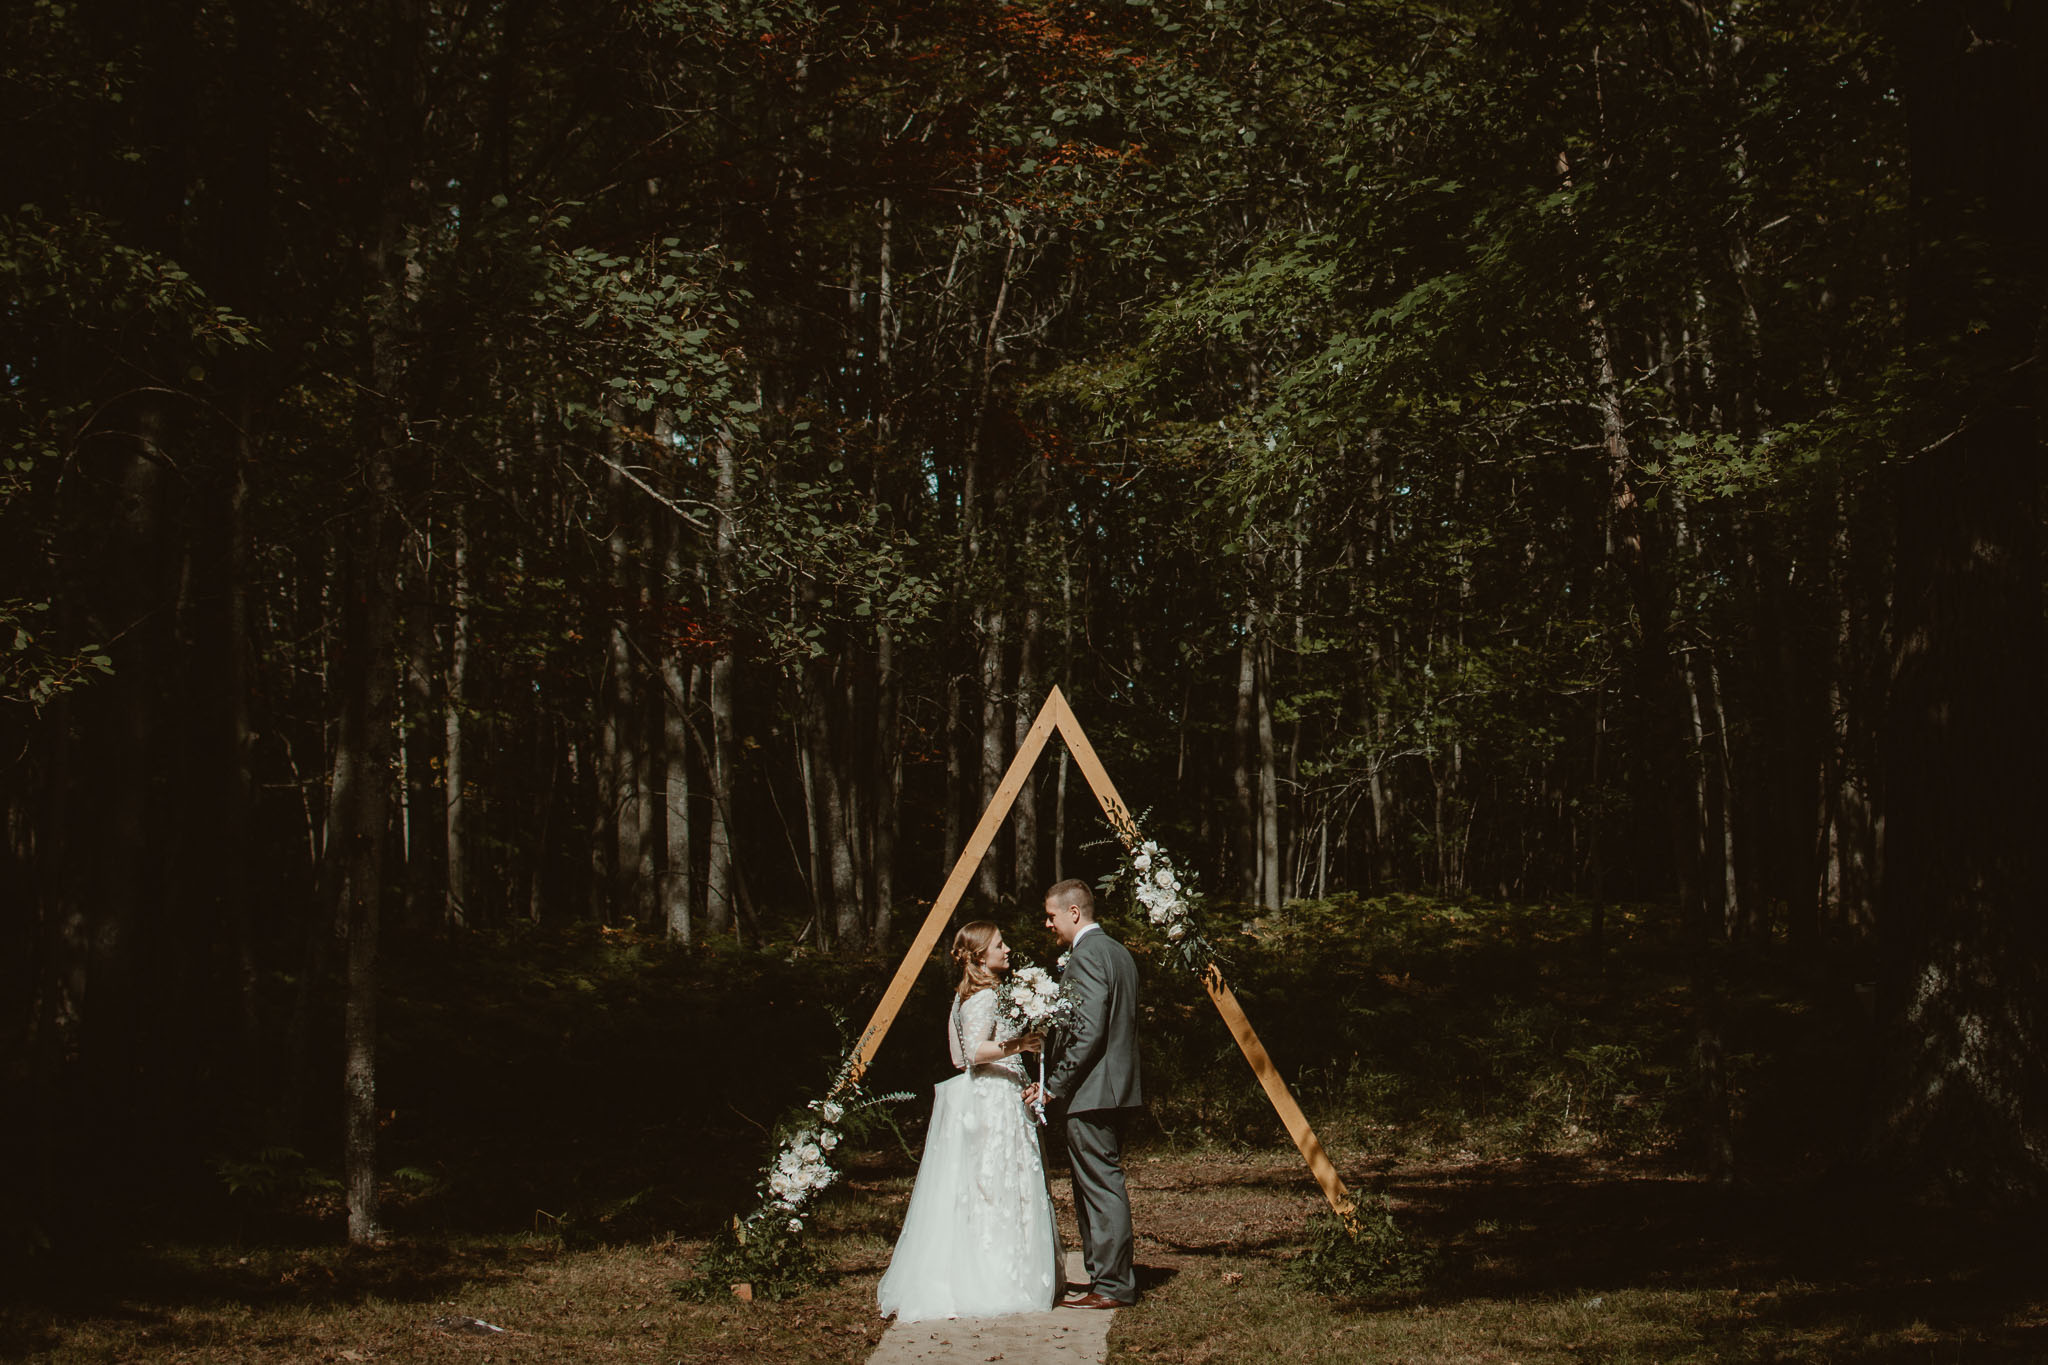 Couple standing together holding hands in front of ceremony triangle arch in the woods.